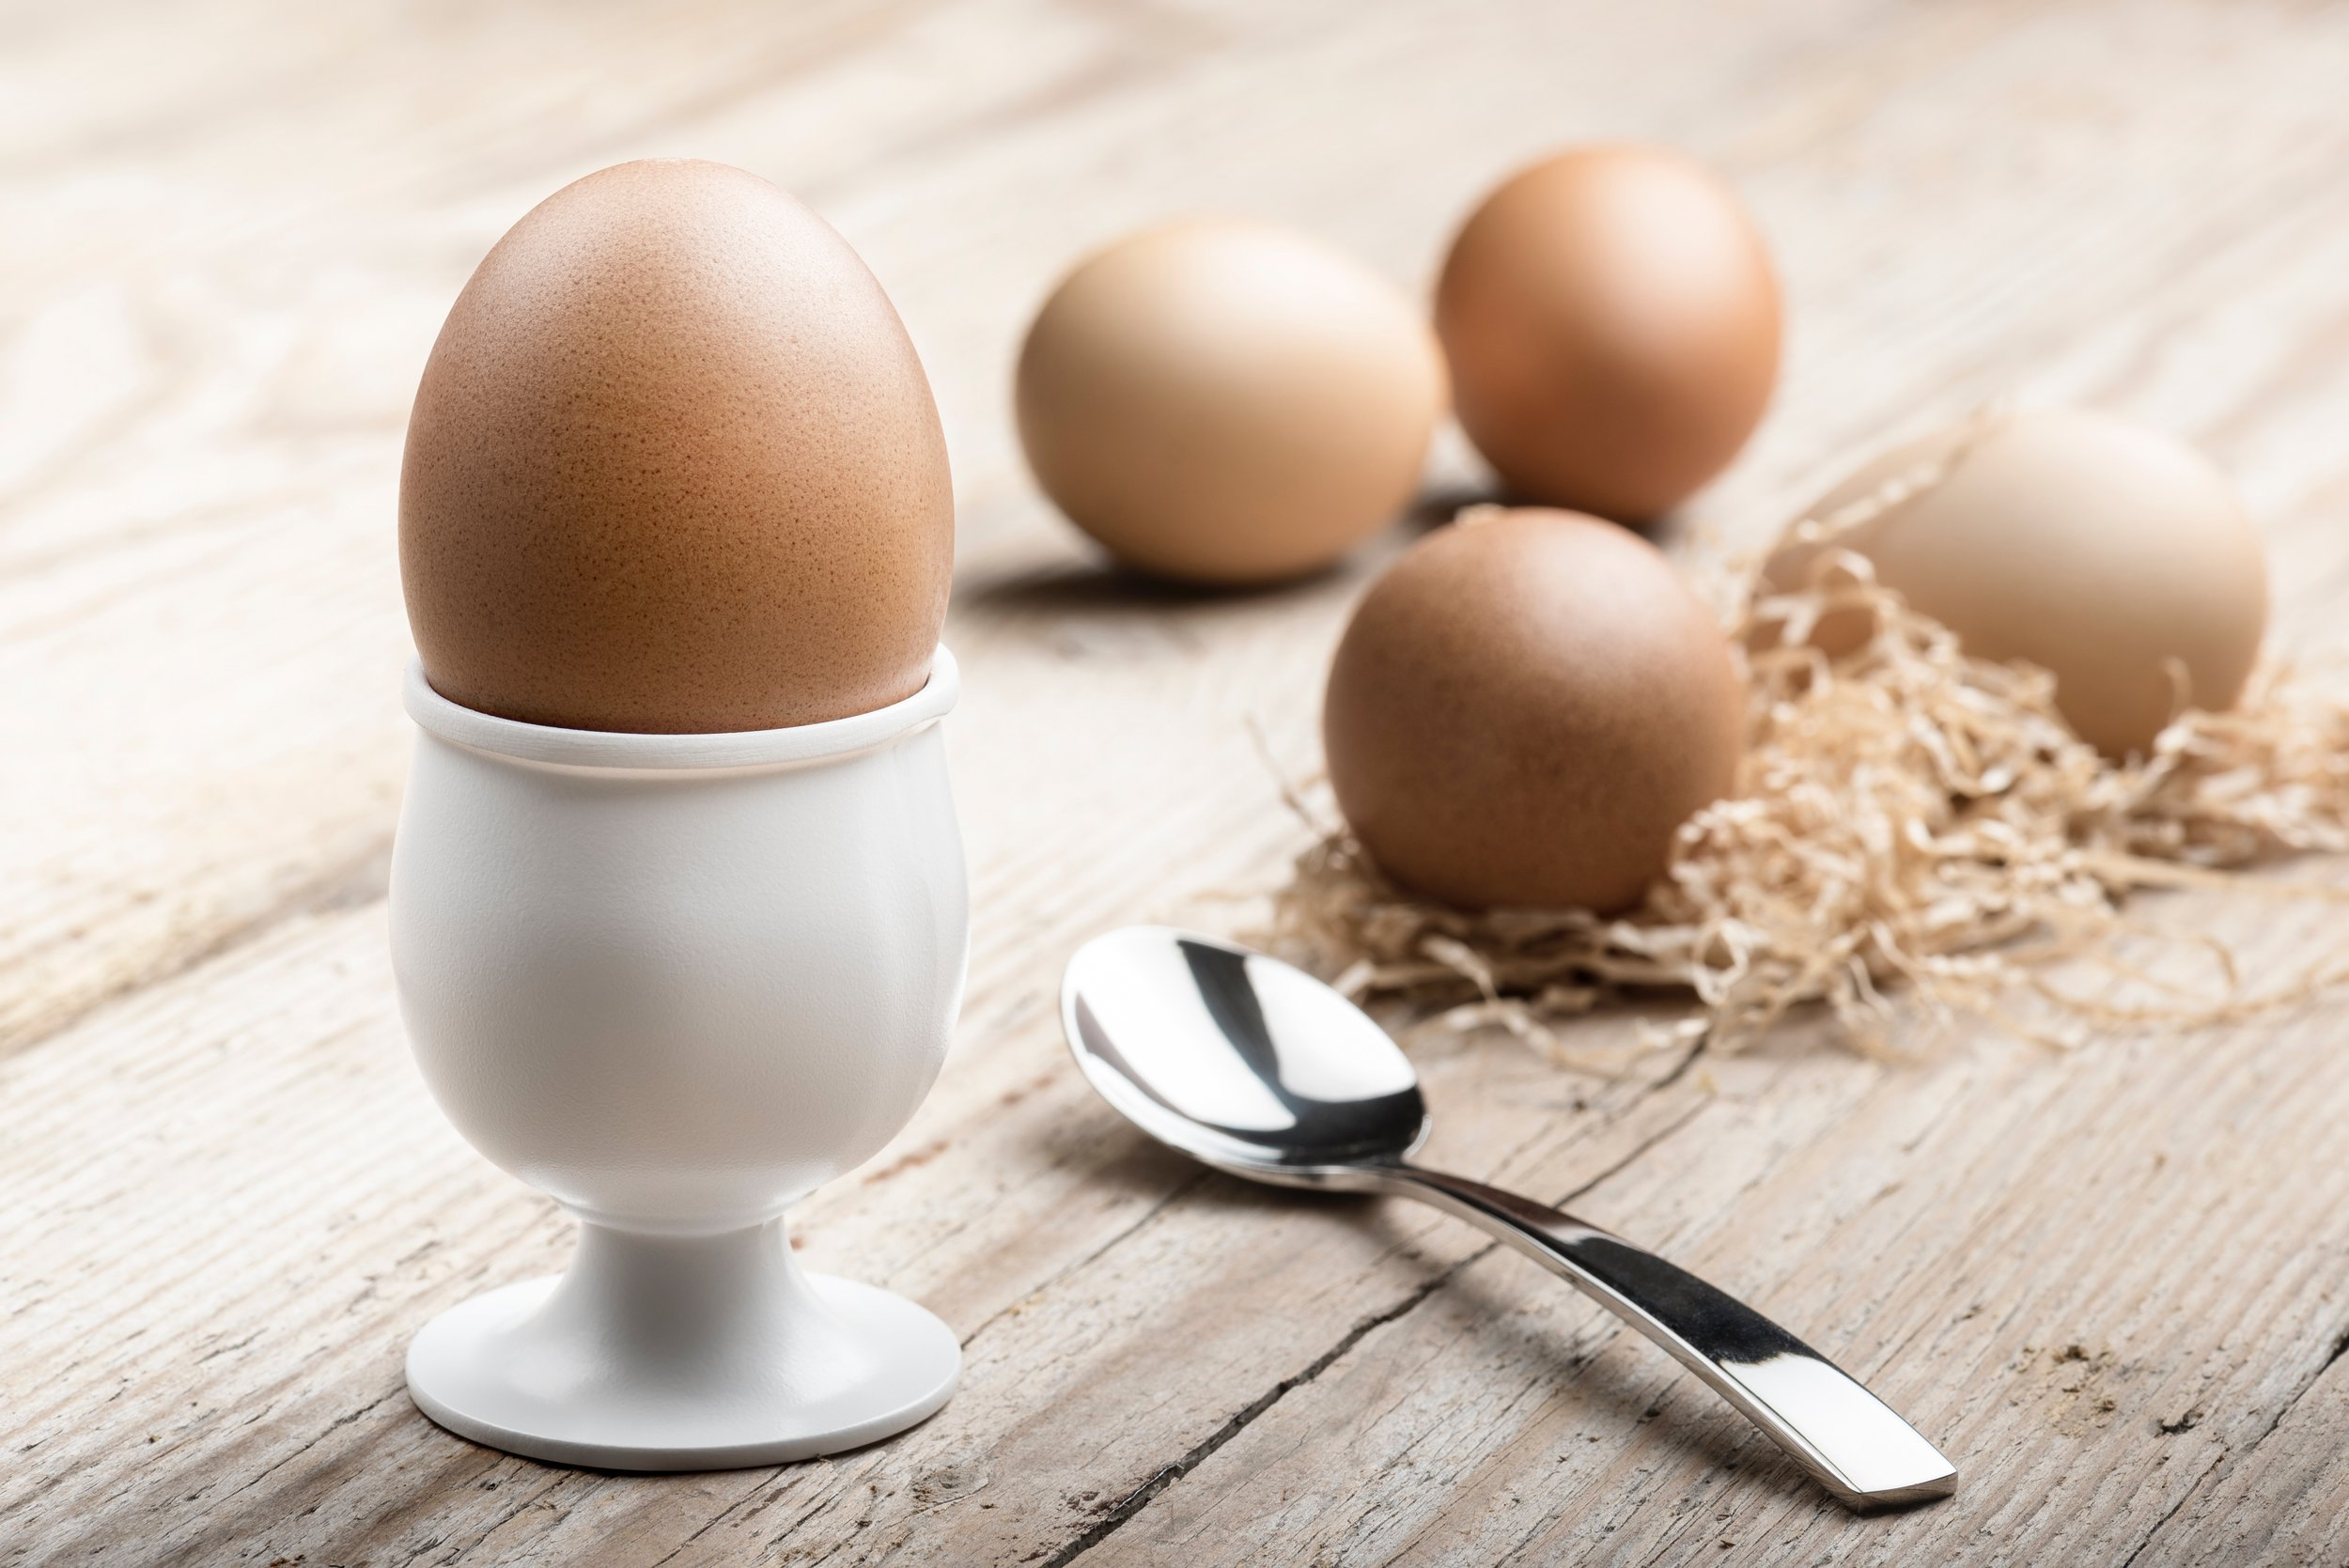 eggs and eggcup.jpg